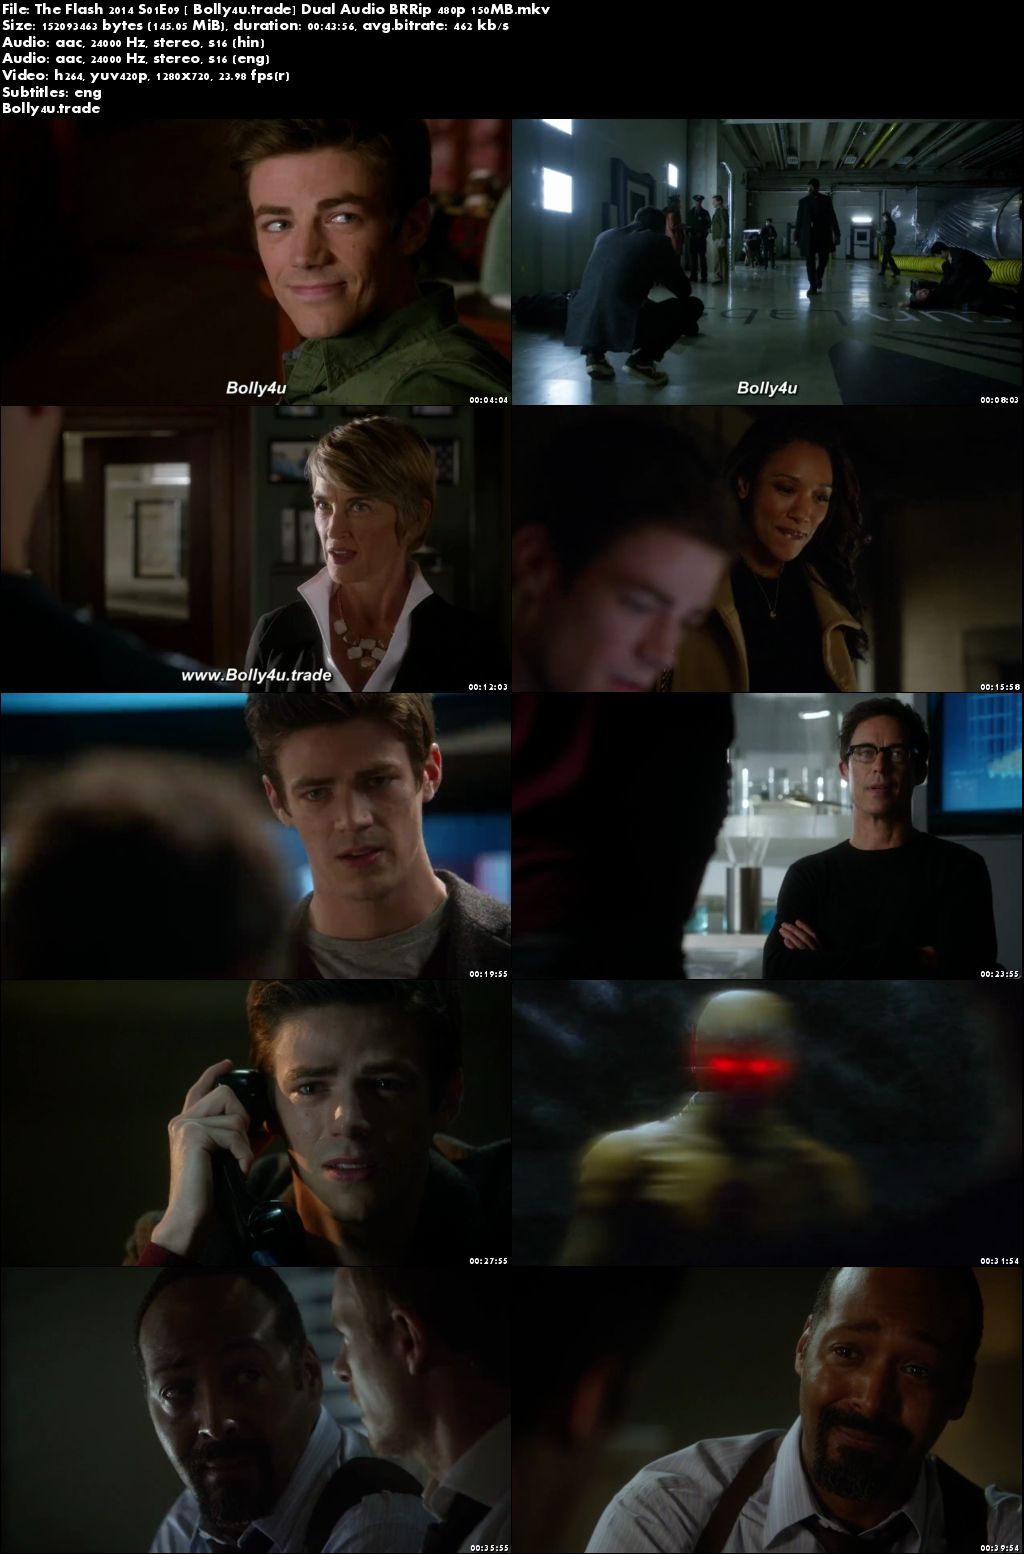 The Flash 2014 S01E09 BRRip 150MB Hindi Dual Audio 480p Download